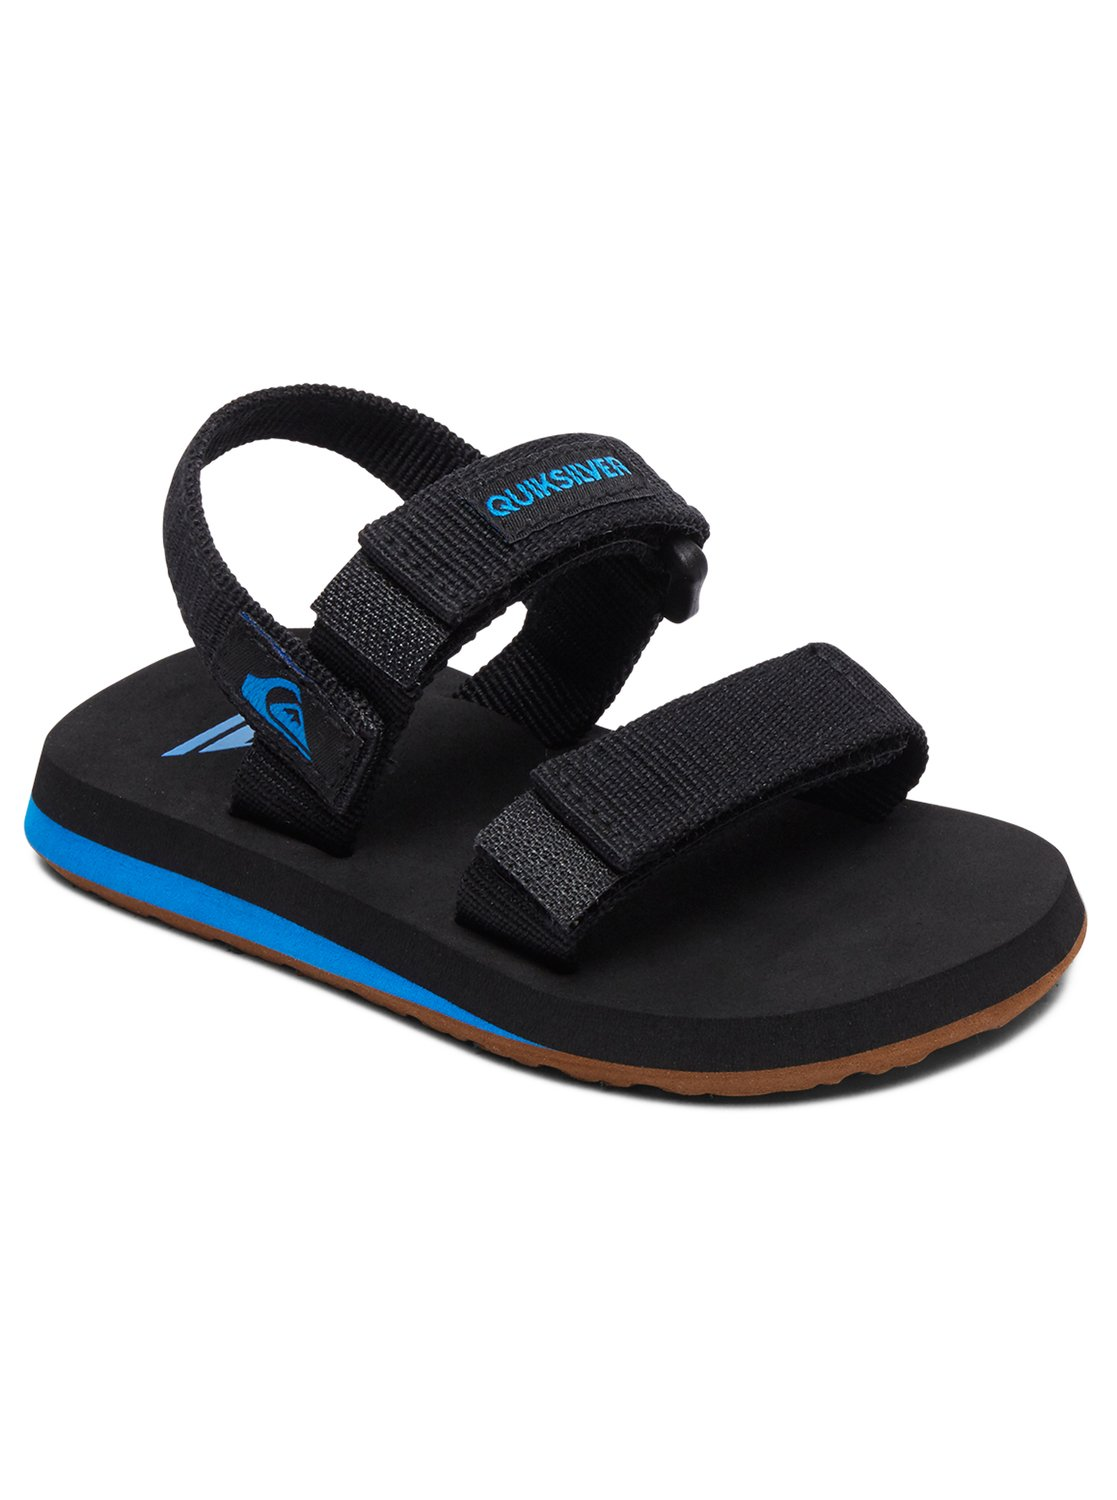 Quiksilver Kids/' Monkey Caged Youth Sandal